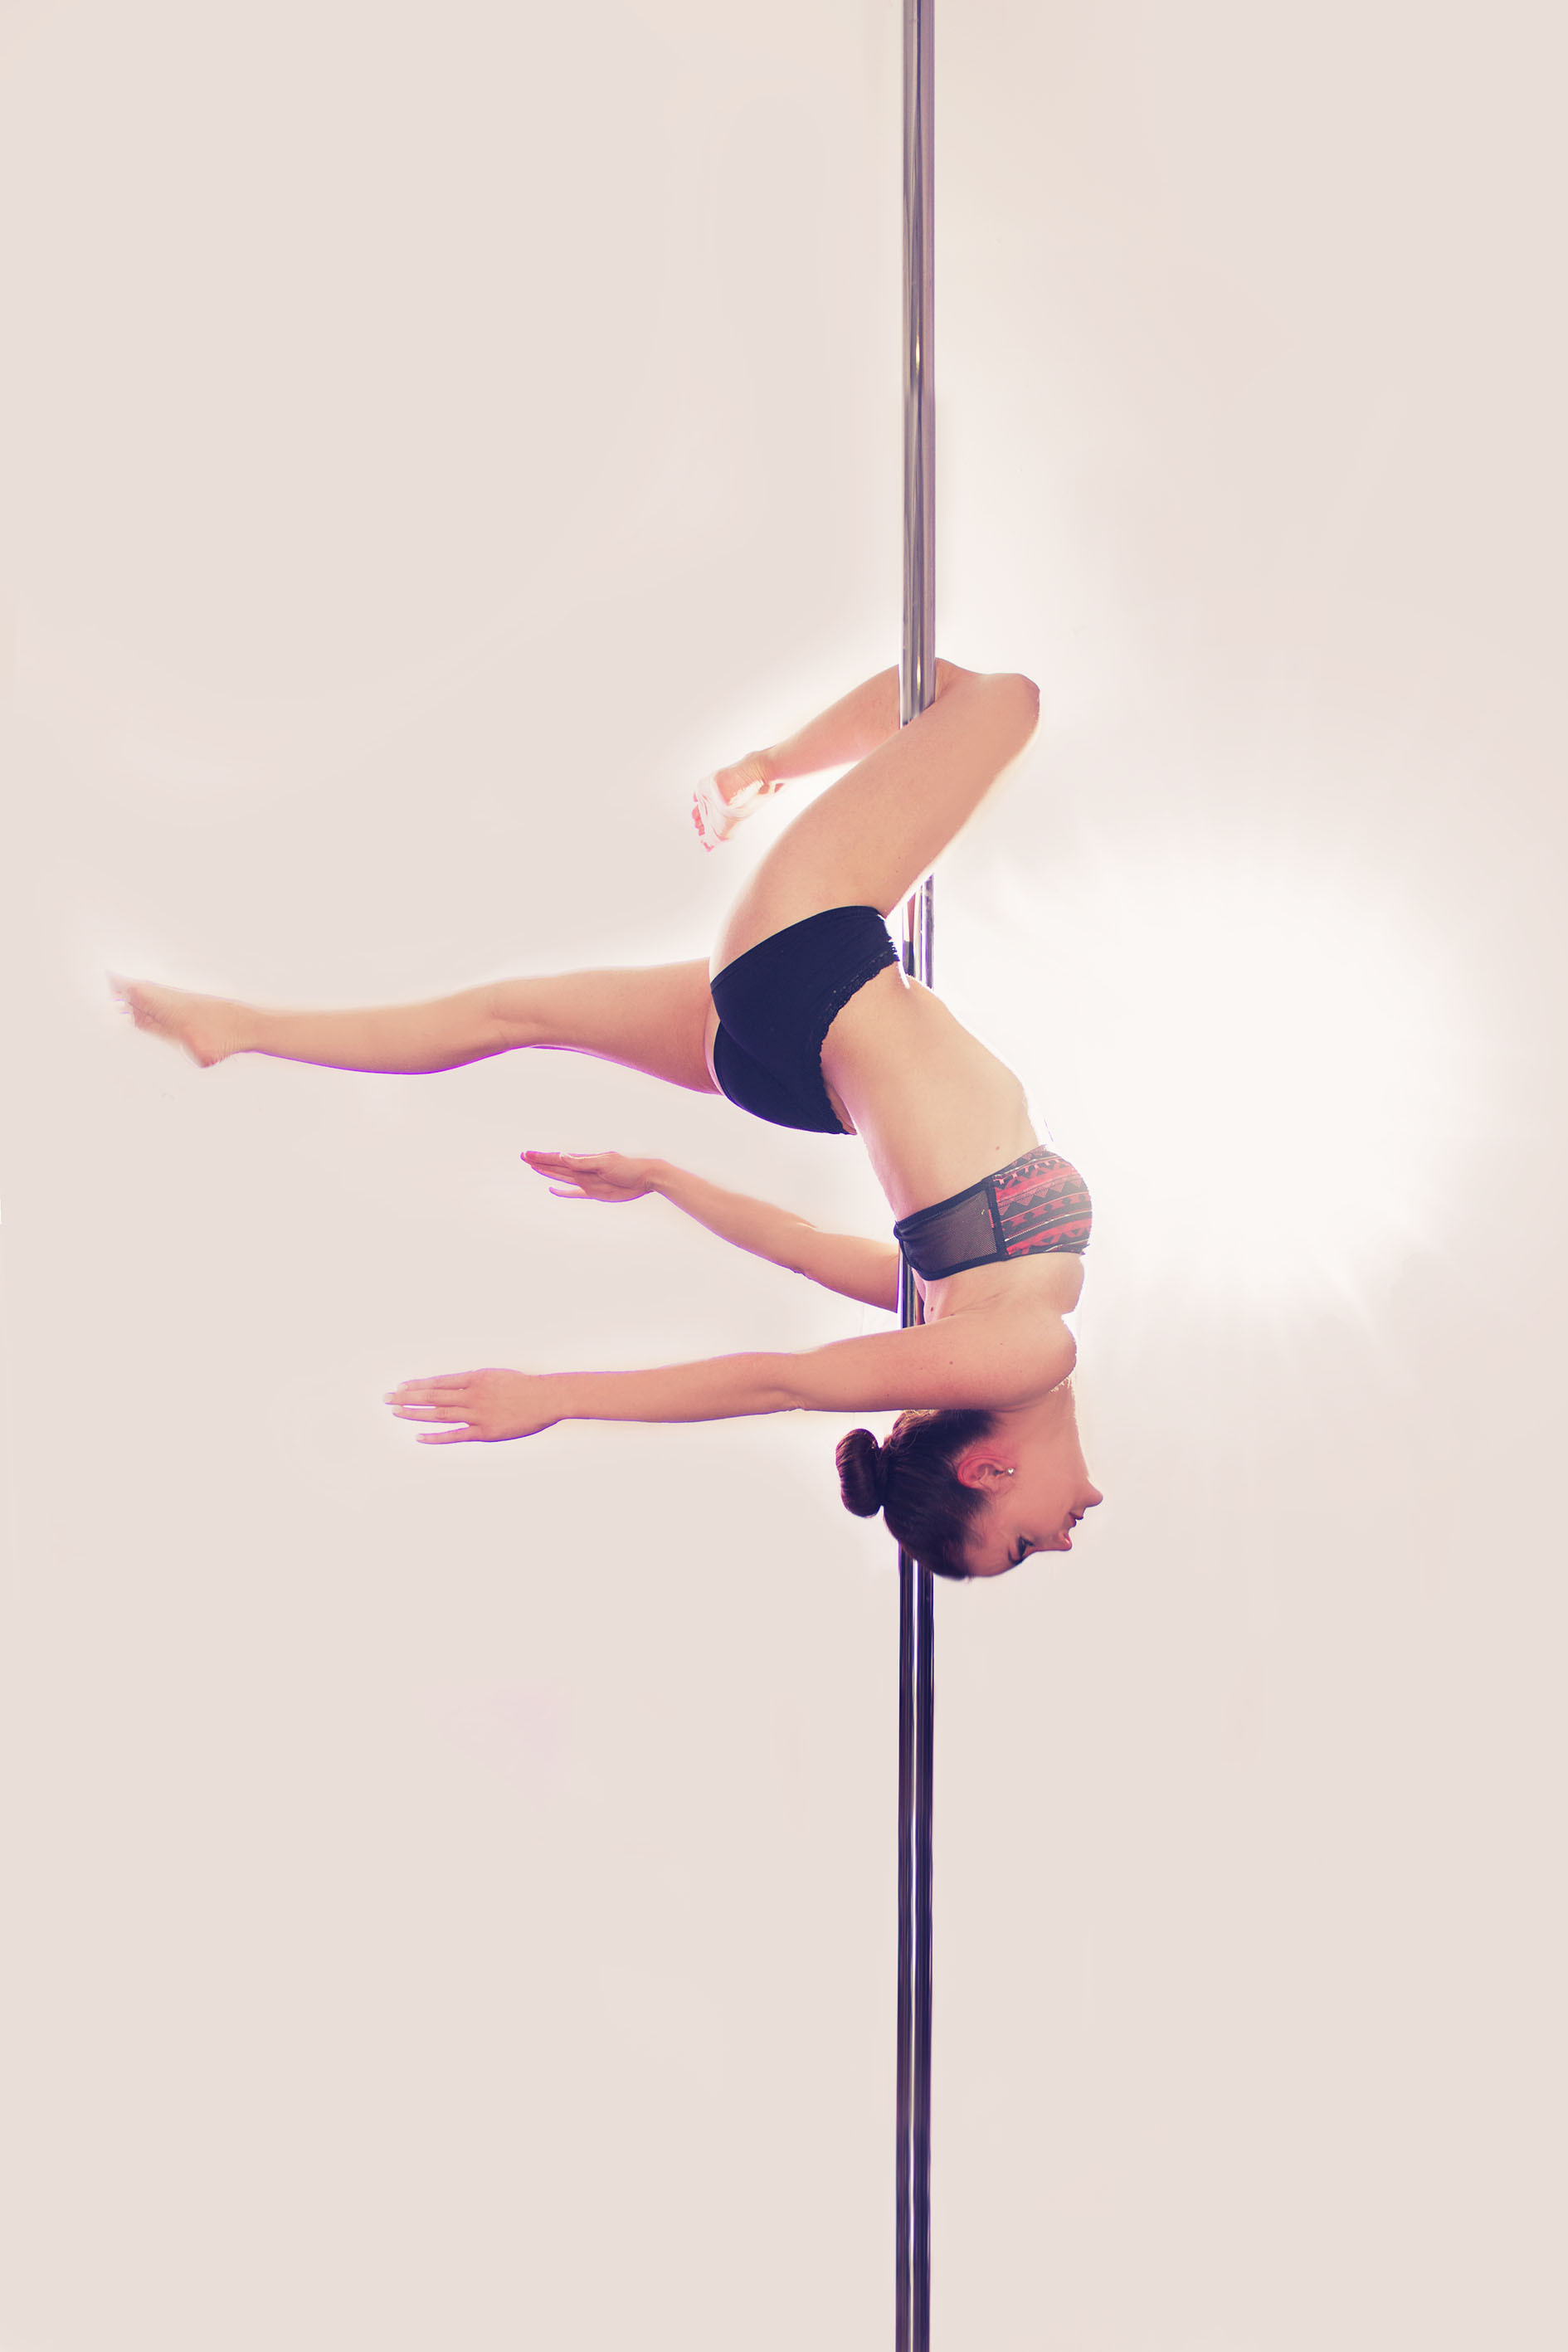 Poledance Münster